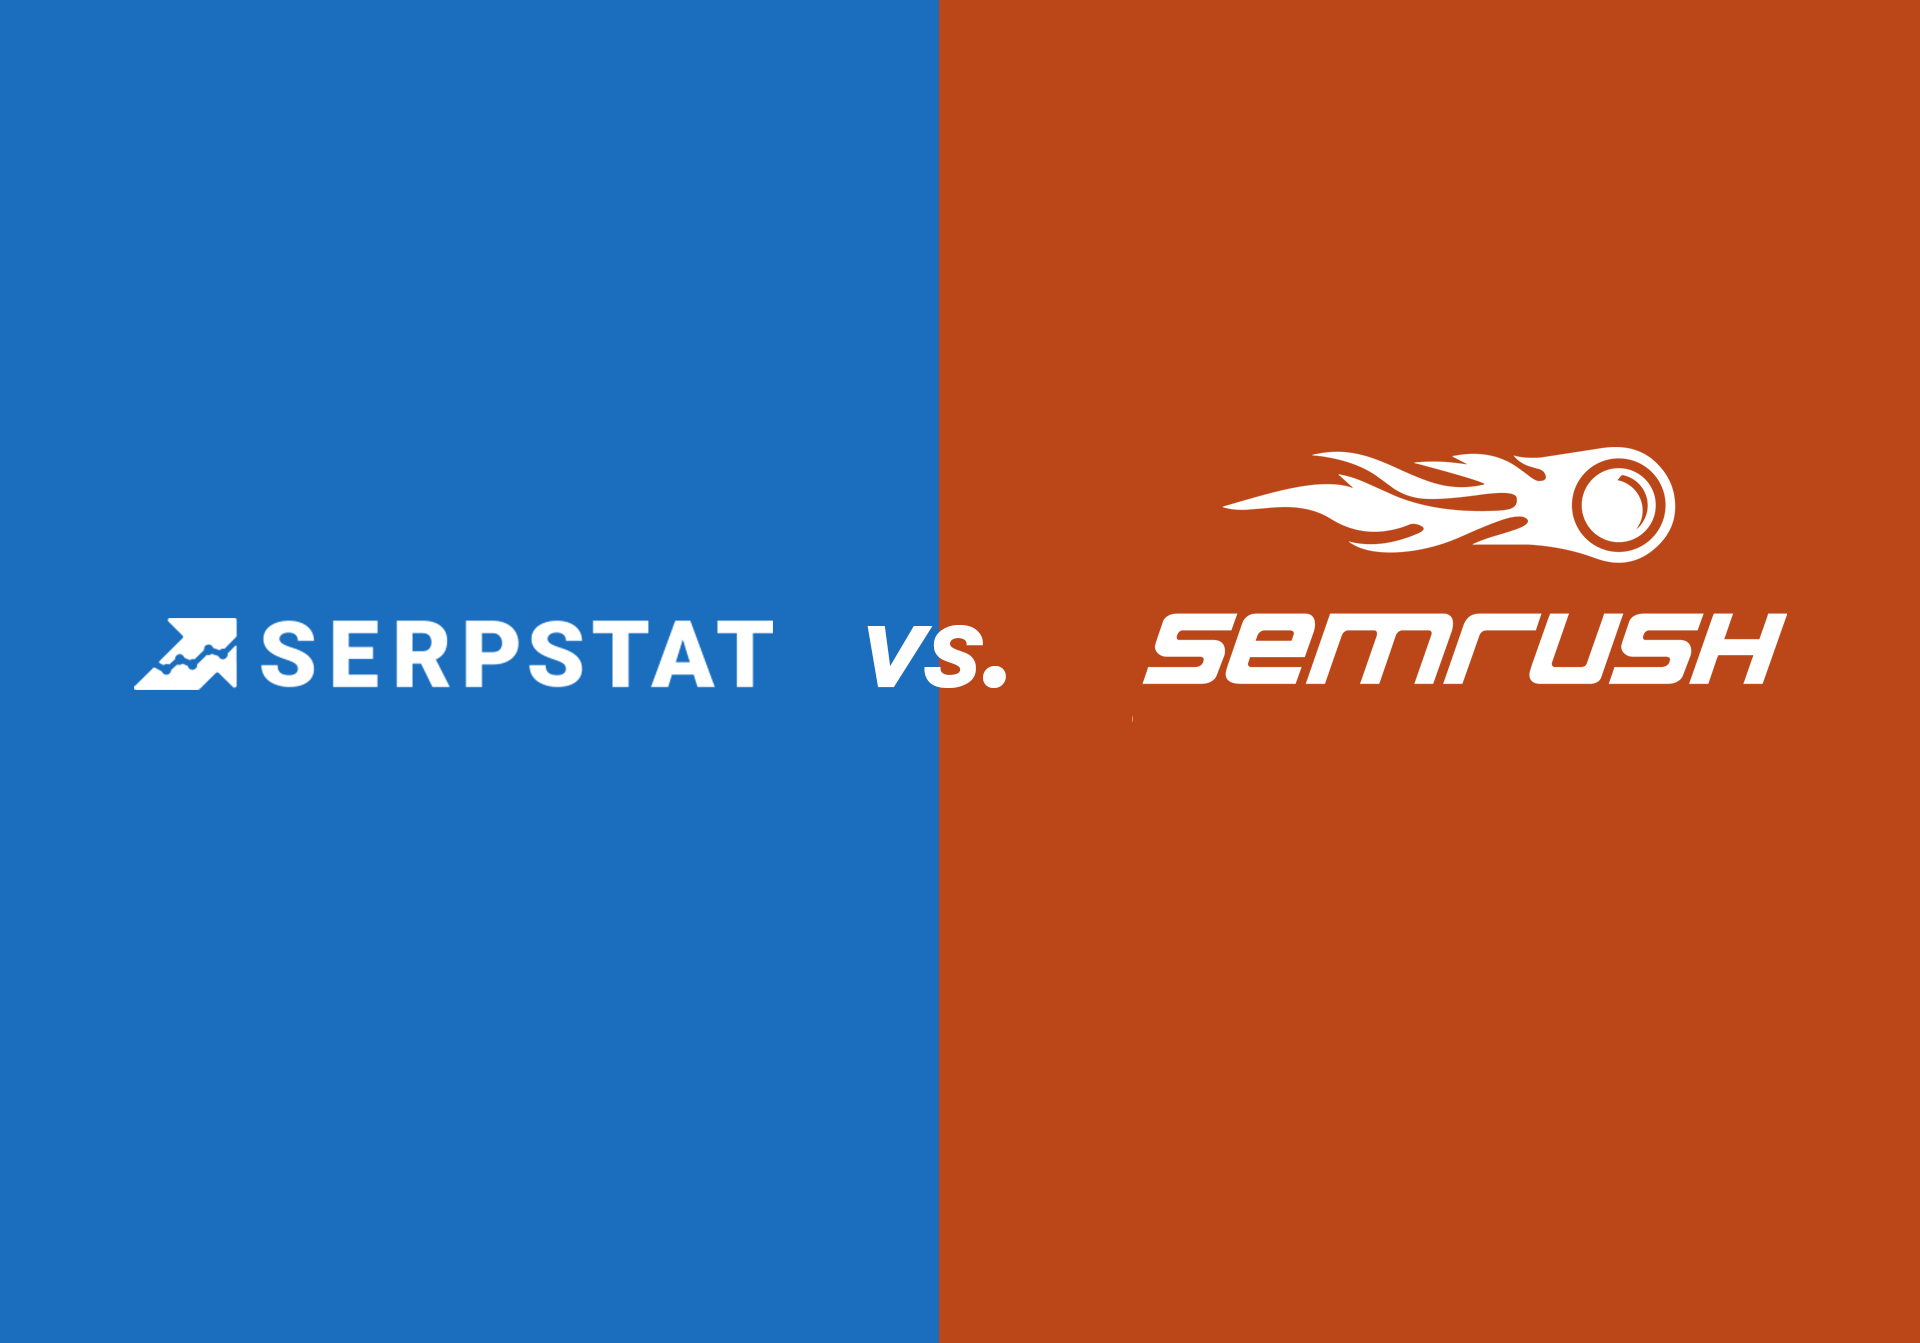 20% Off Voucher Code Printable Semrush 2020